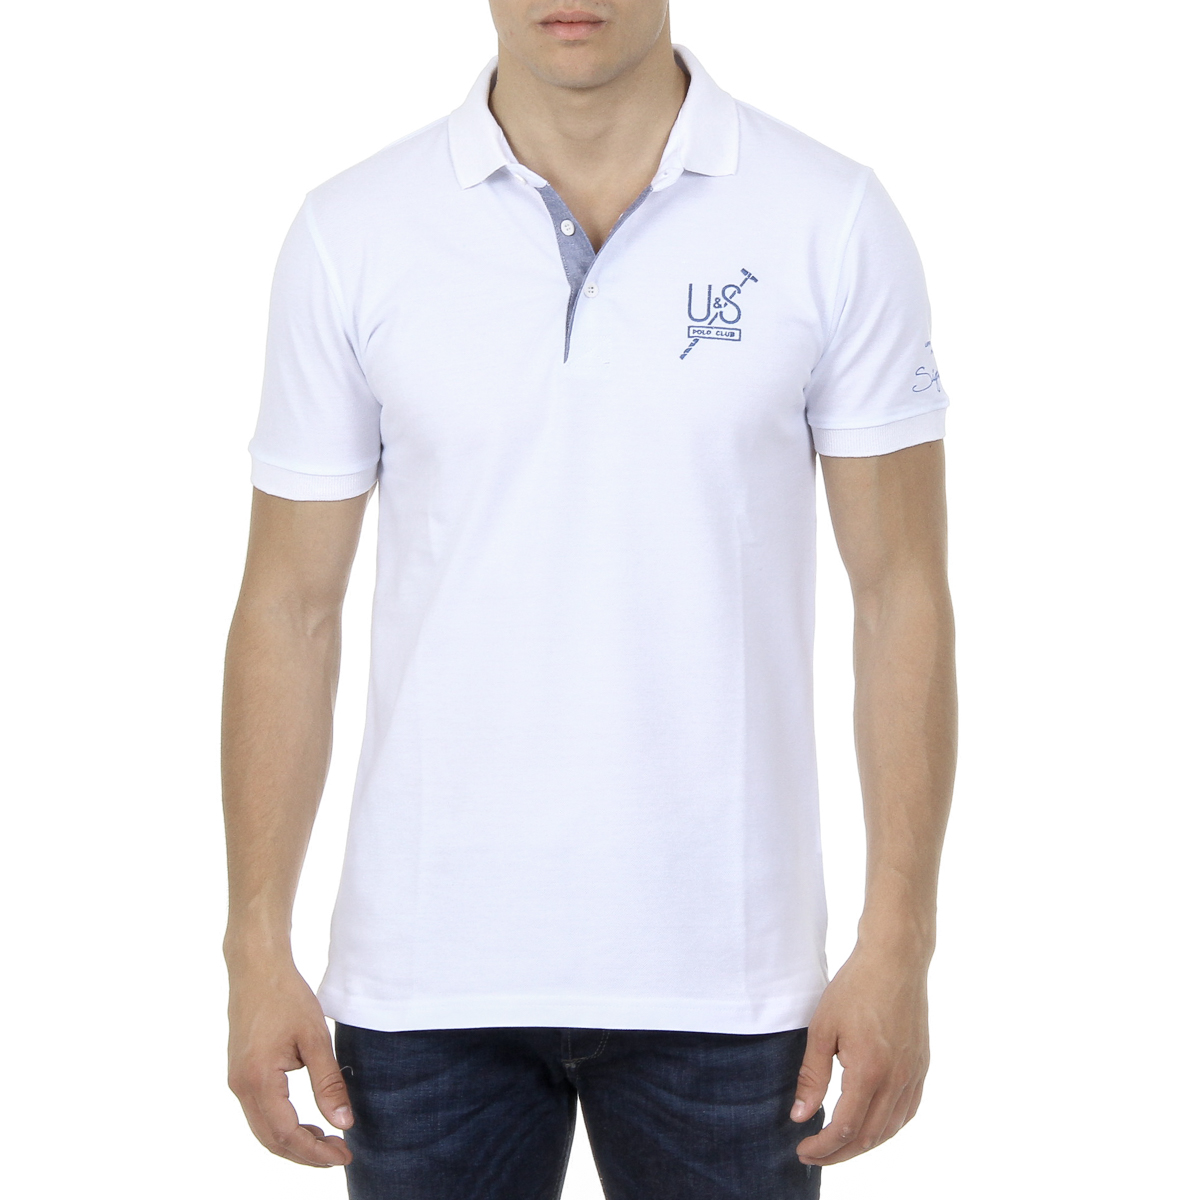 Primary image for Ufford & Suffolk Polo Club Mens Polo Short Sleeves US026 WHITE